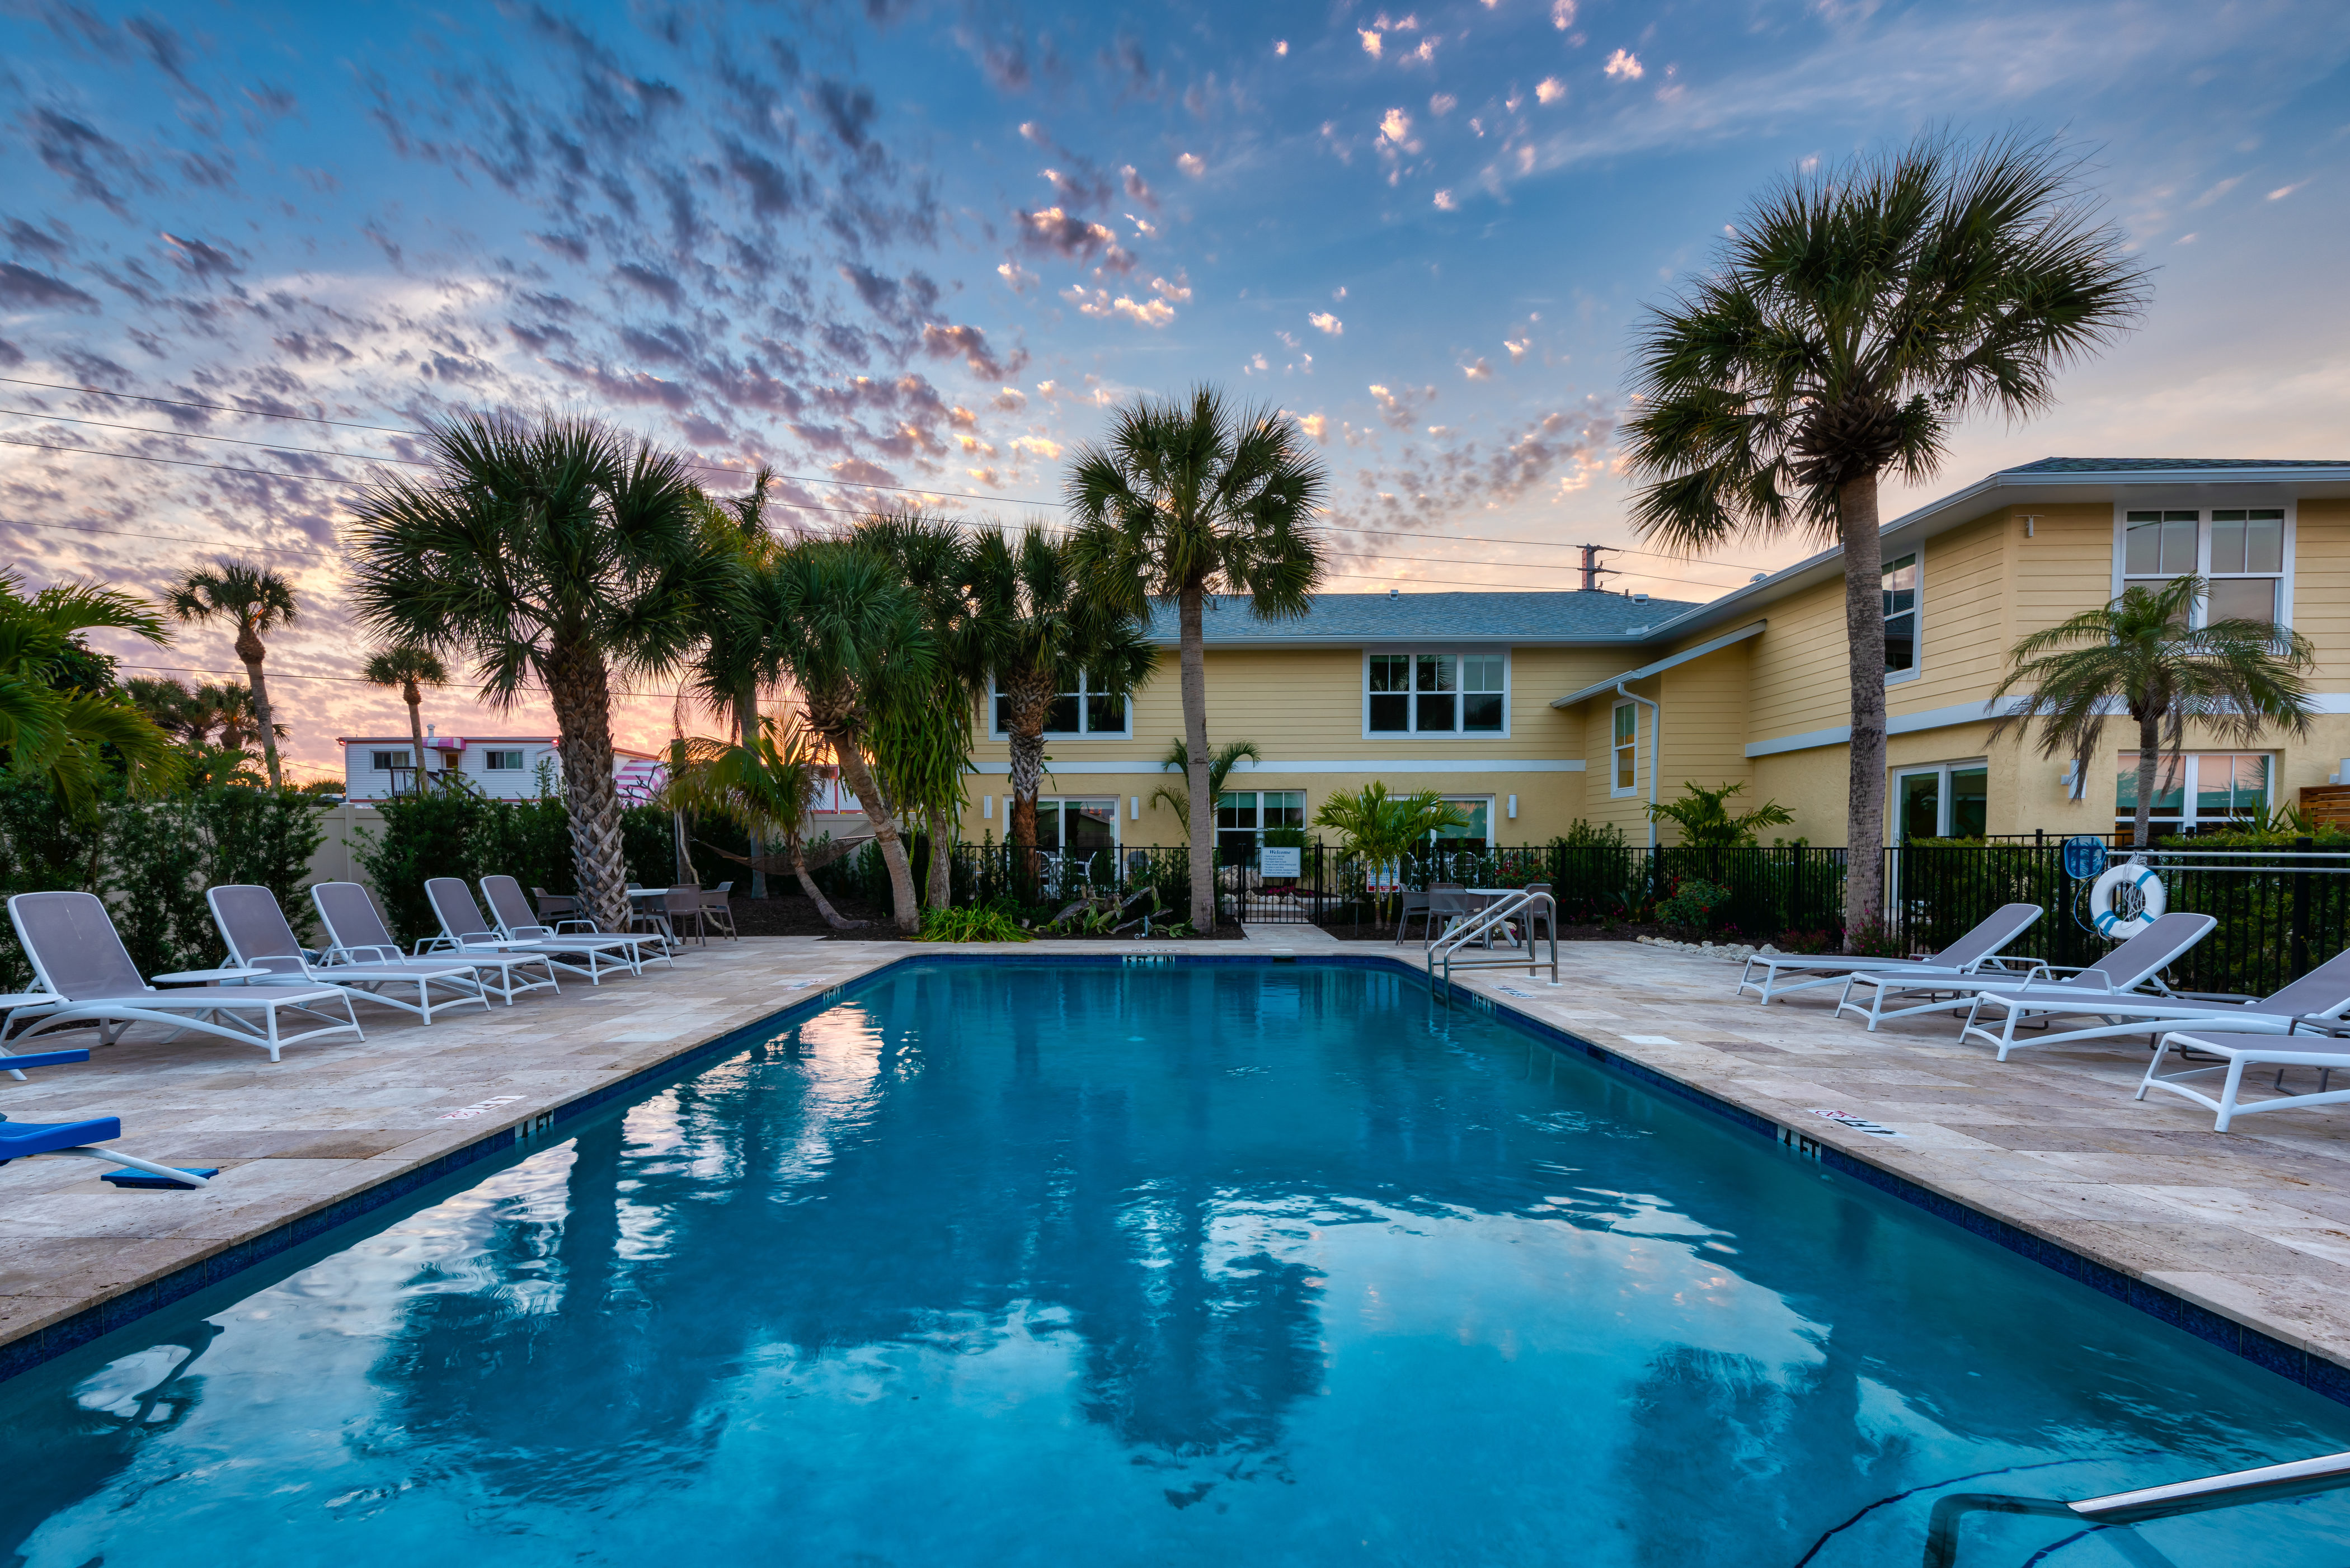 casey-key-hotels-escape-pool-new